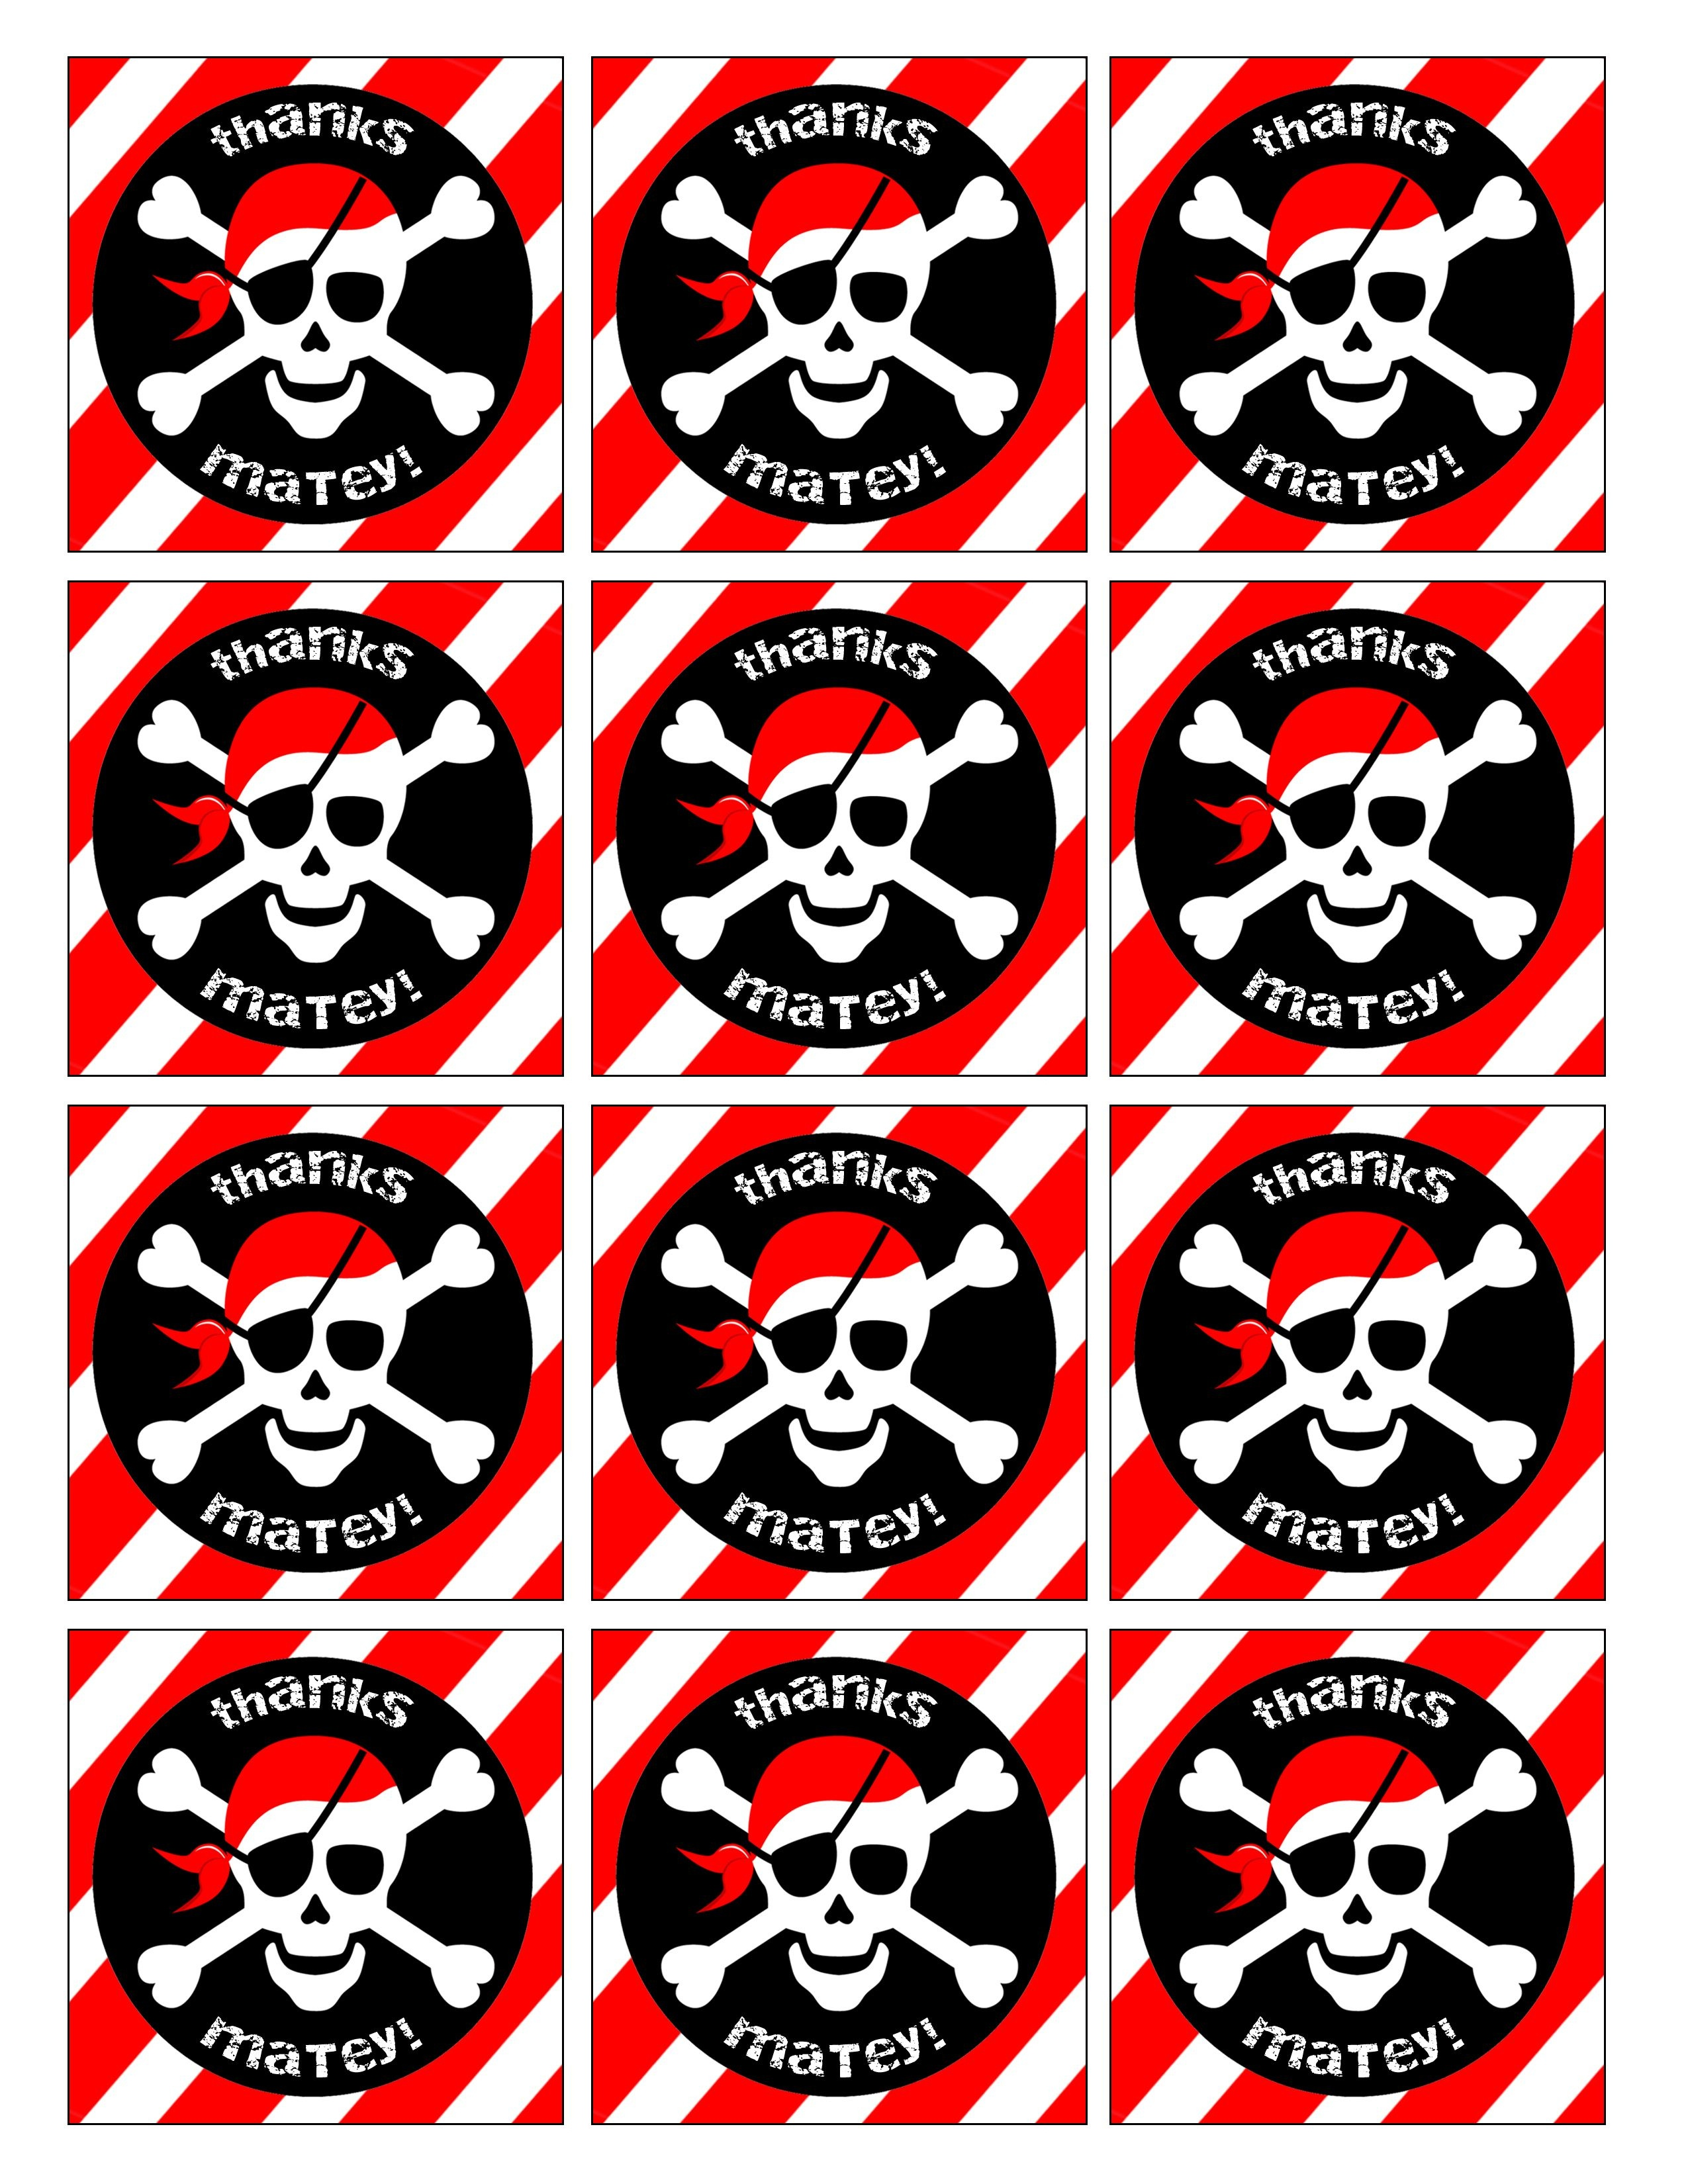 Pirate Birthday Party With Free Printables | Cairo's 3Rd Bday - Free Printable Pirate Cupcake Toppers